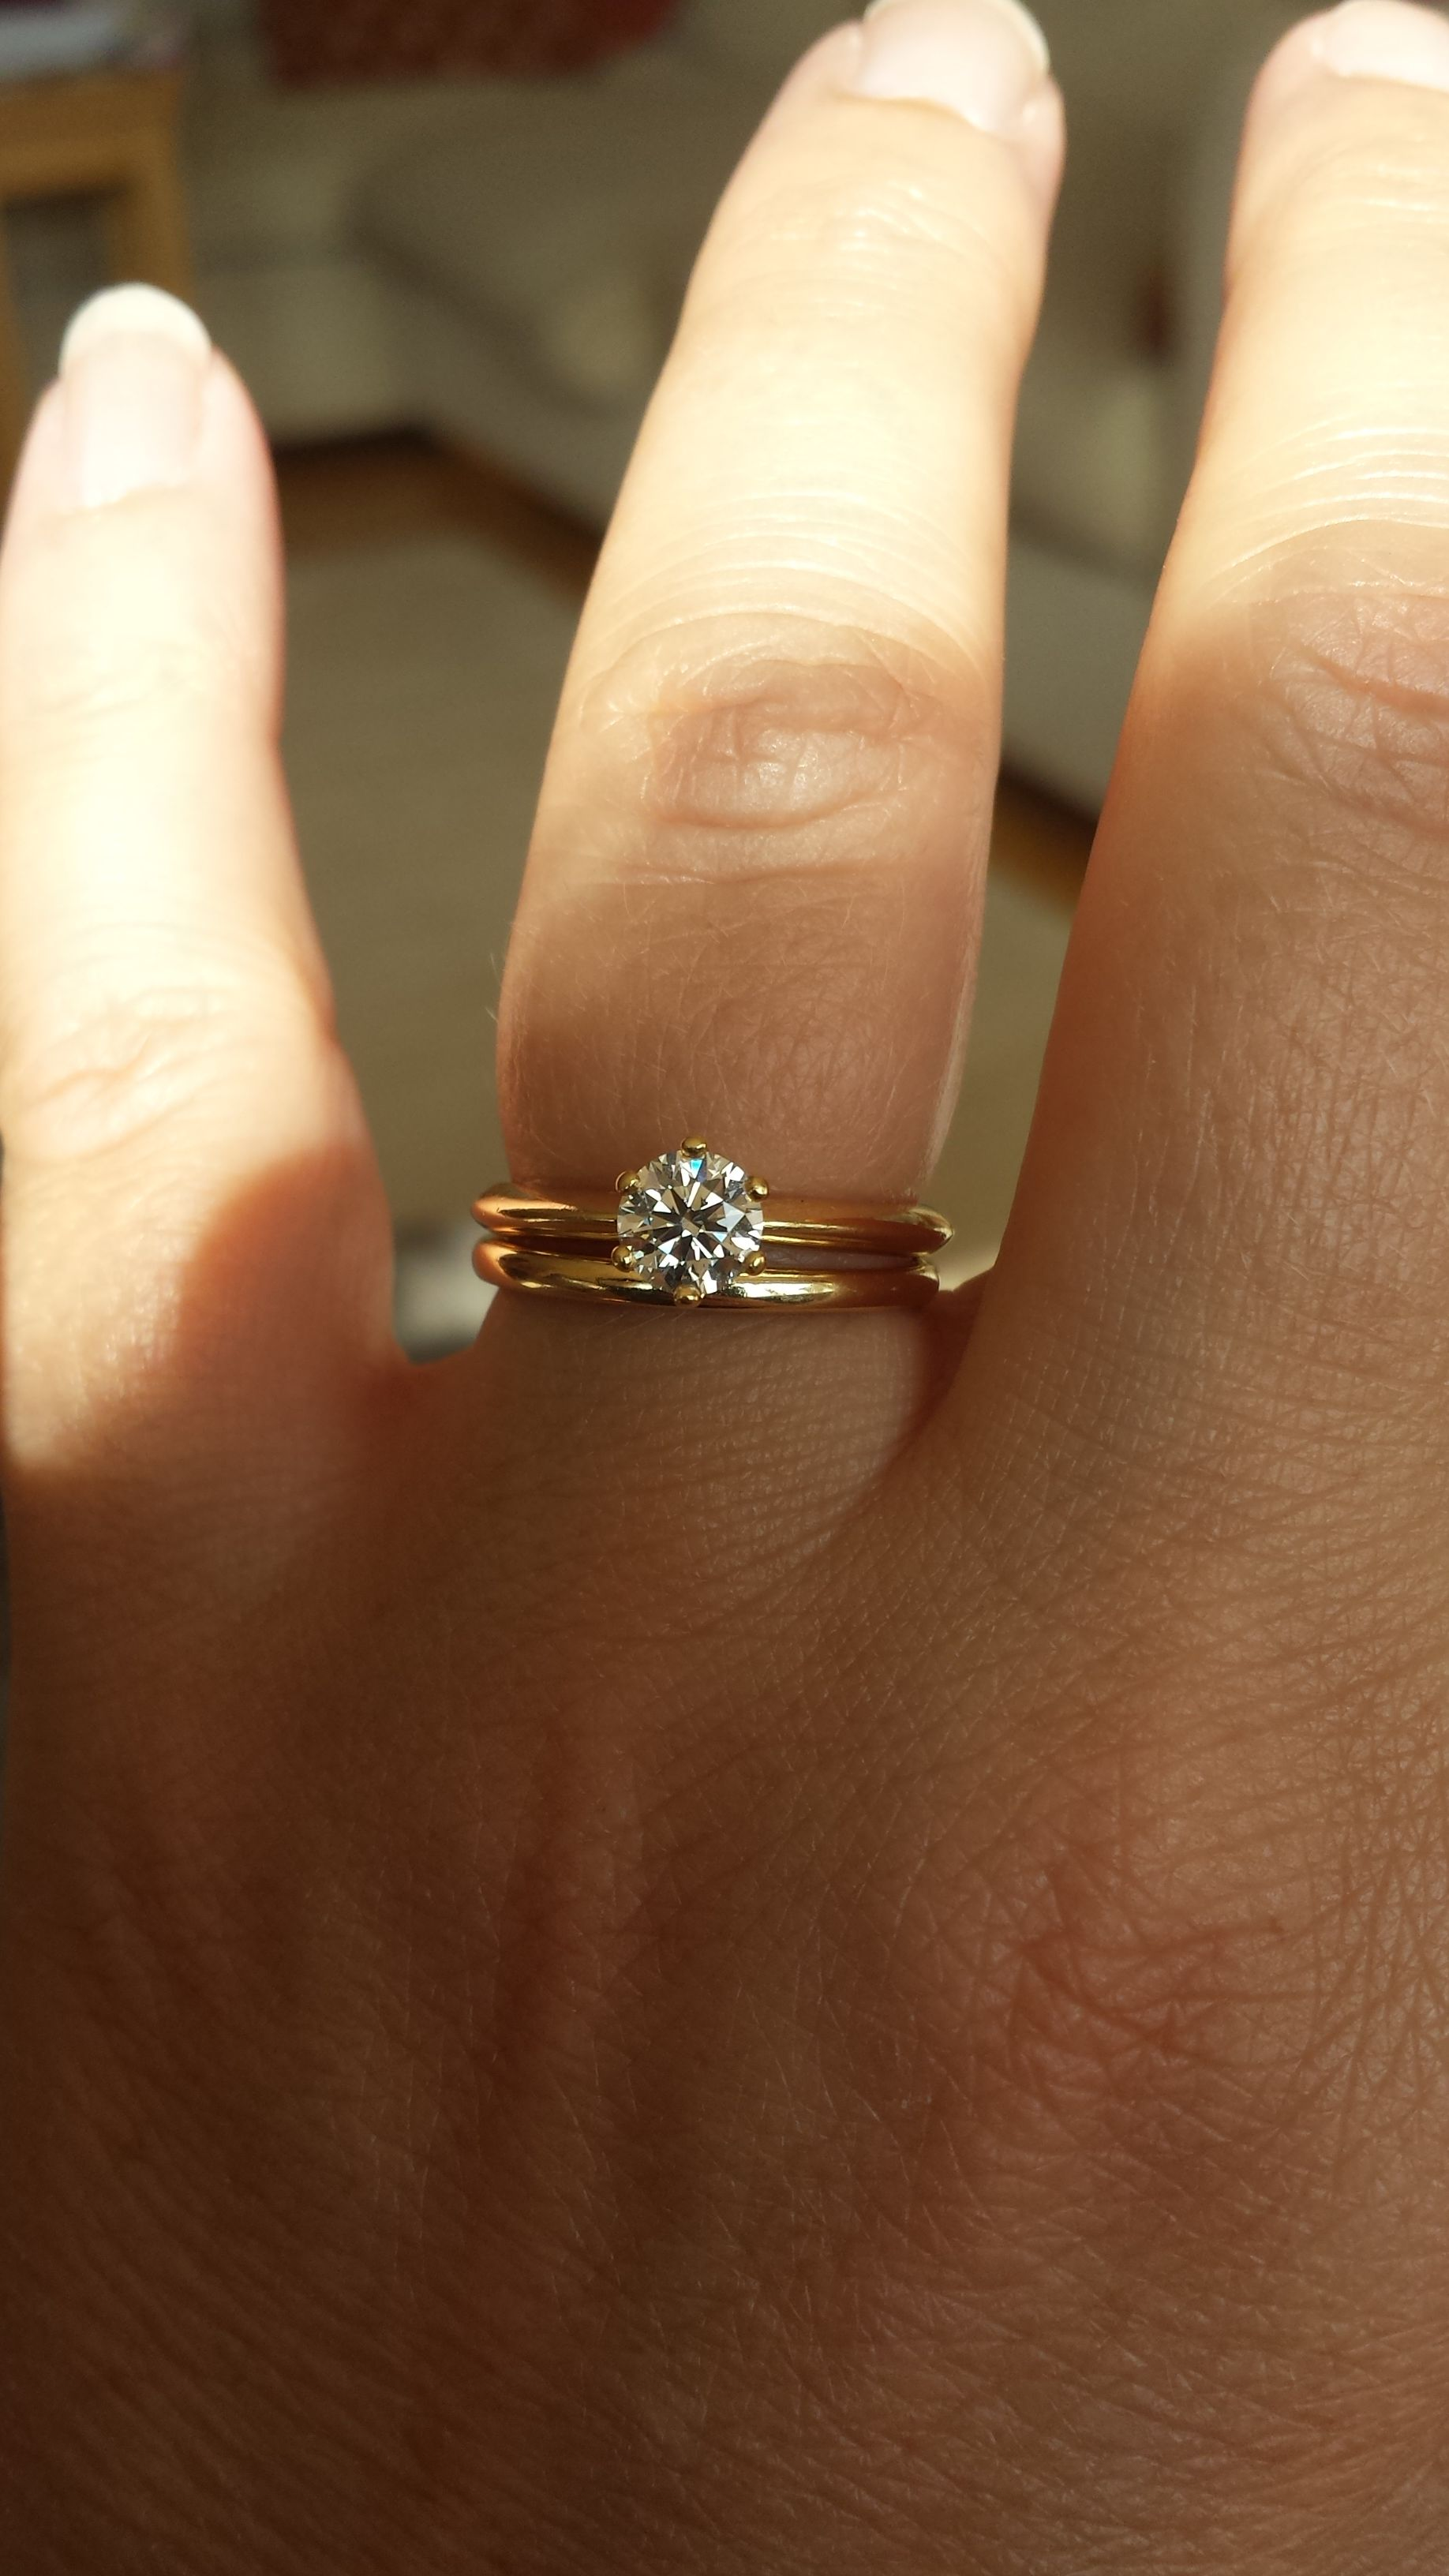 stories under rings engagement vintage erstwhile stunning diamond carat blogs jewelry